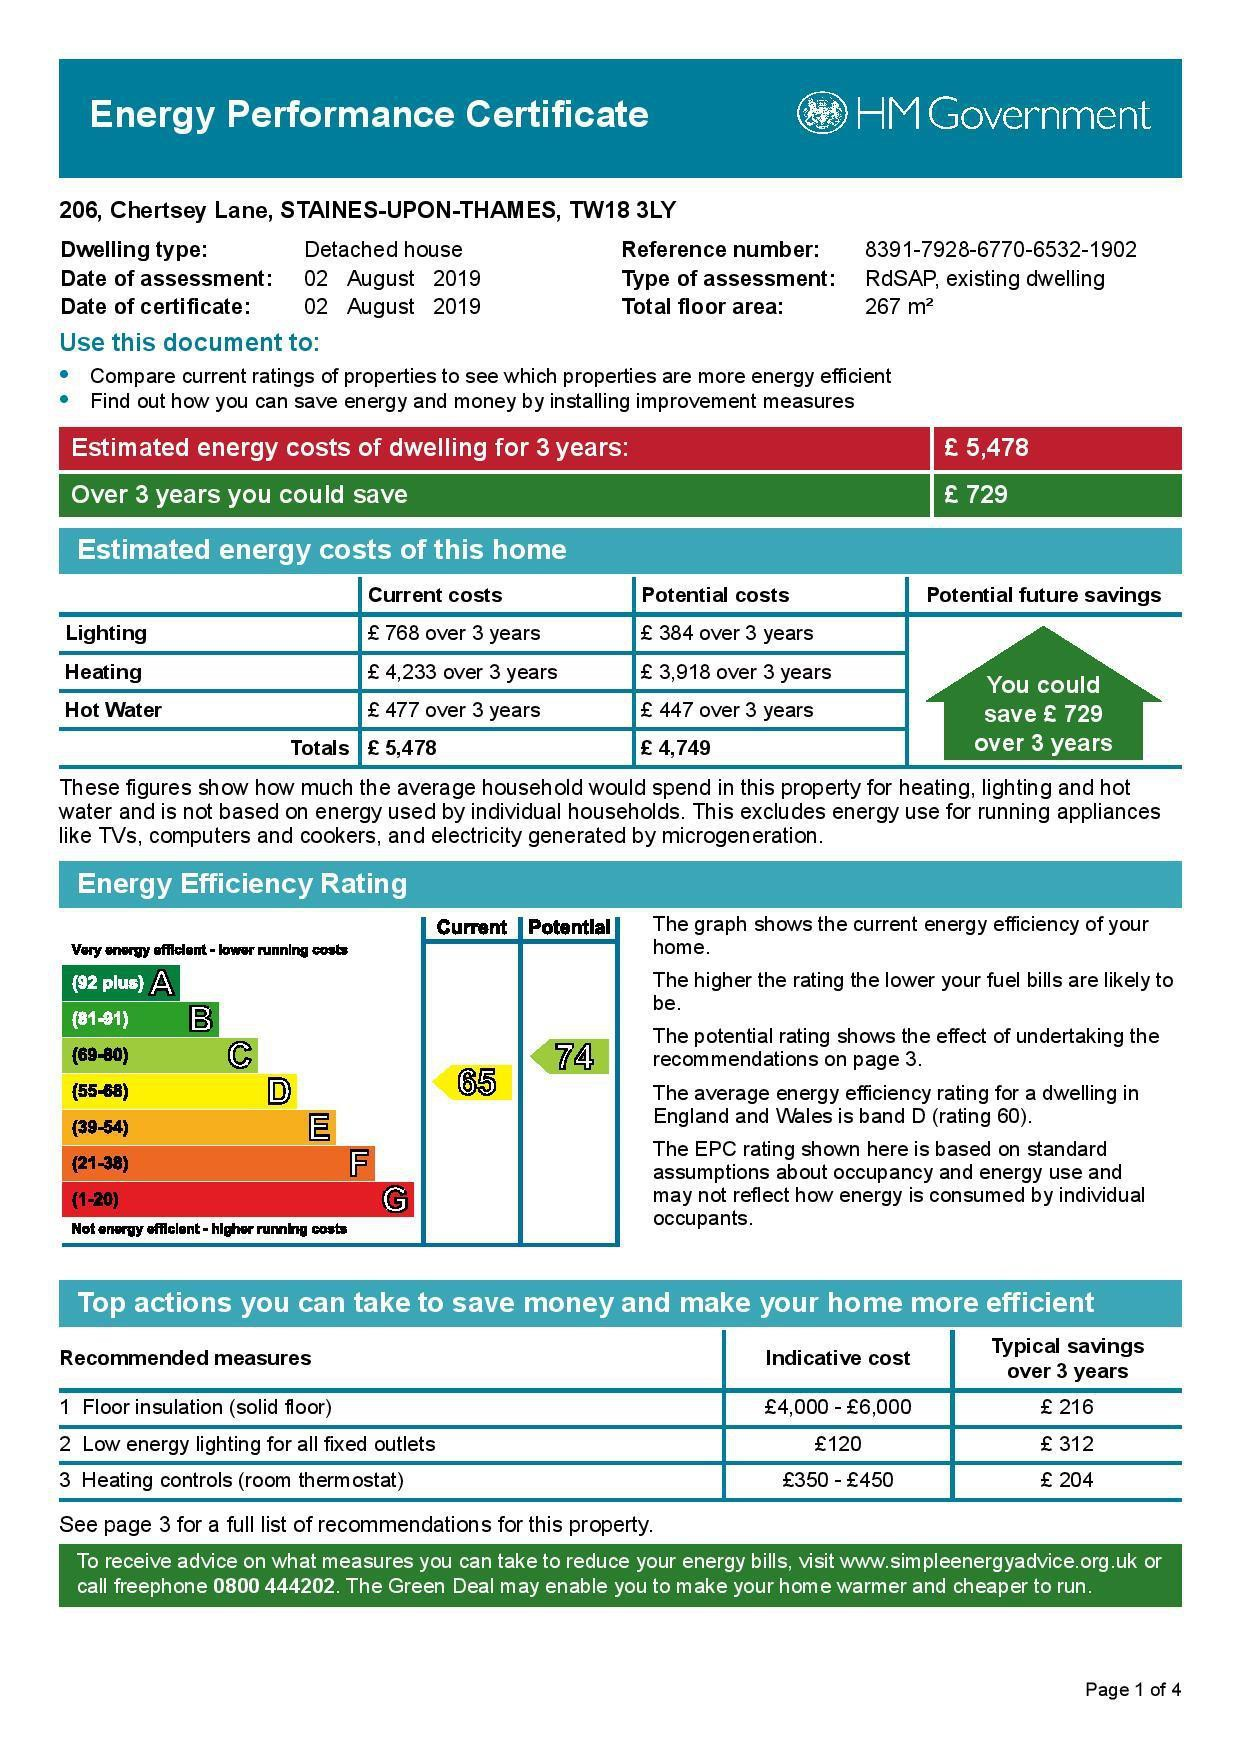 EPC Graph for 206 Chertsey Lane, Staines-Upon-Thames, Middlesex TW18 3LY